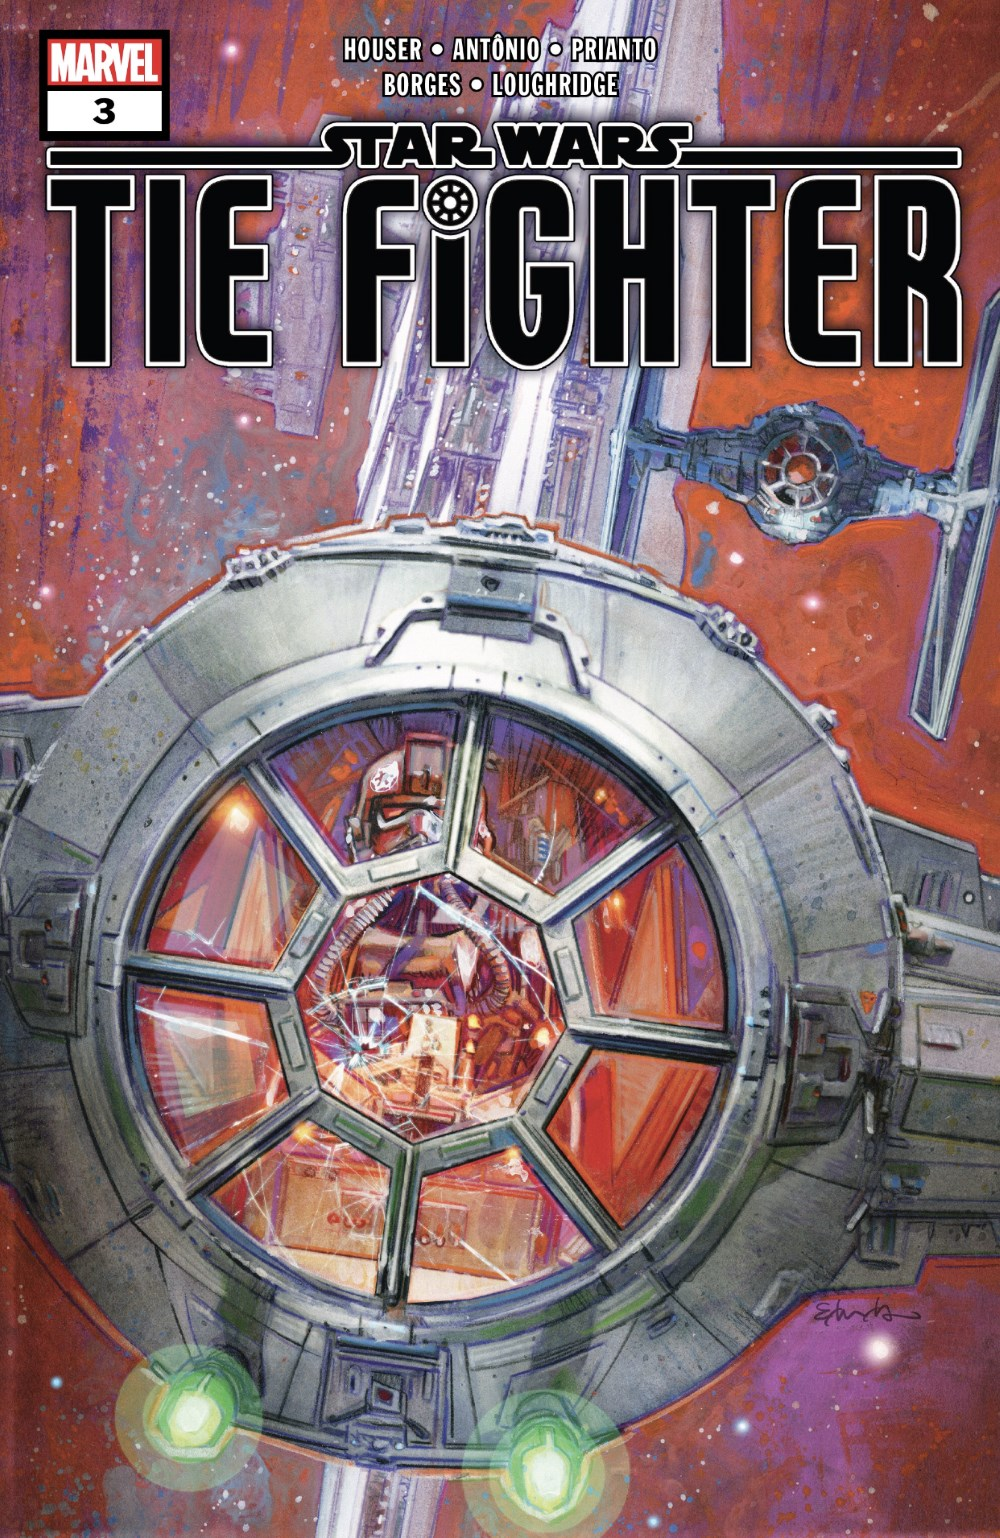 TIE Fighter #3 Cover